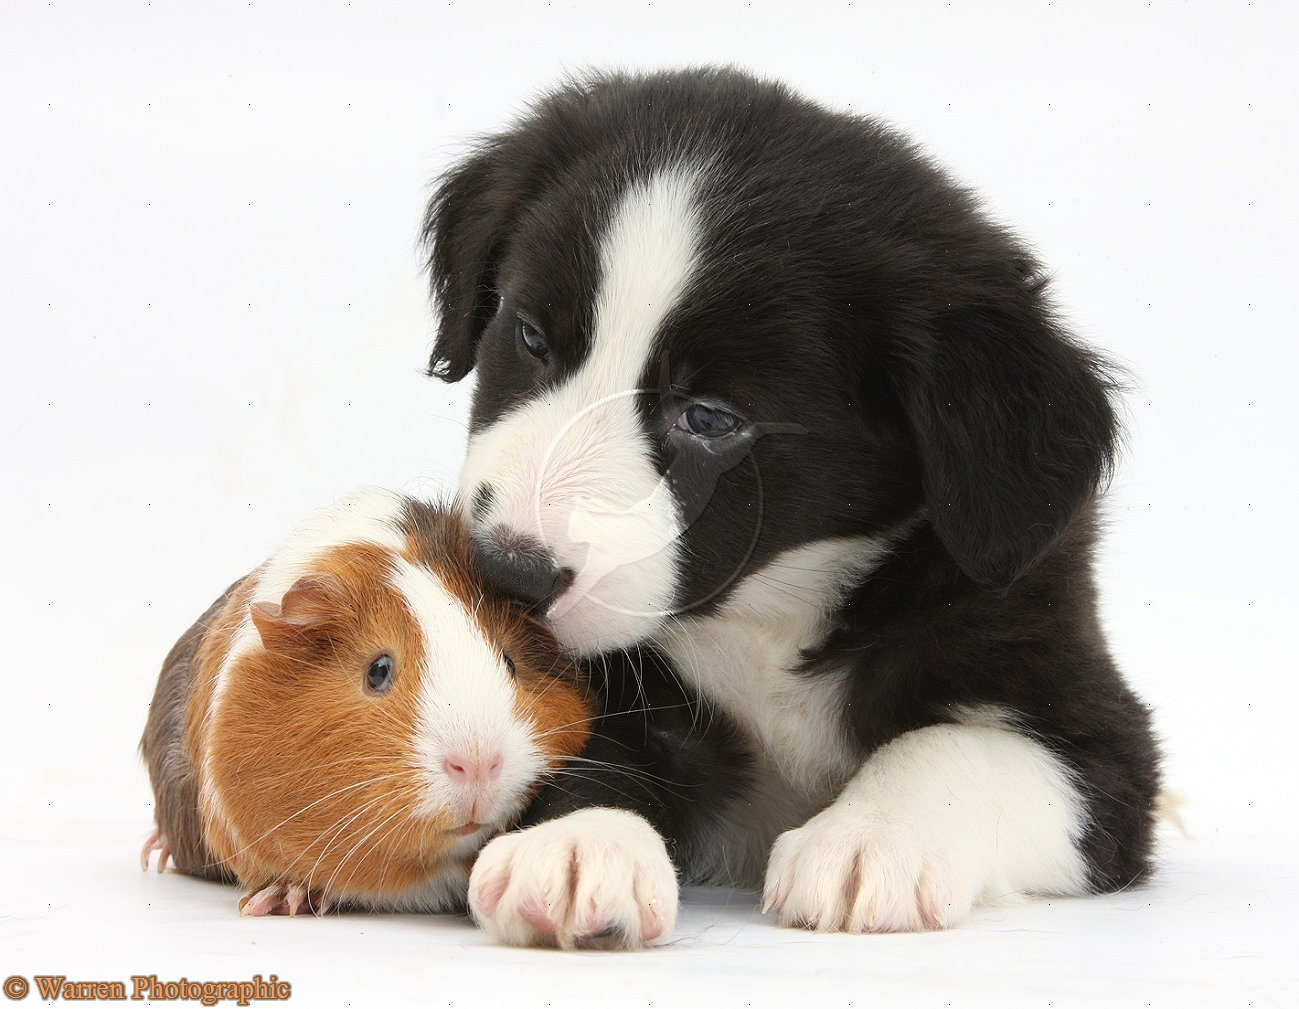 Wp32707 black and white border collie pup and tricolour guinea pig 1299x1009